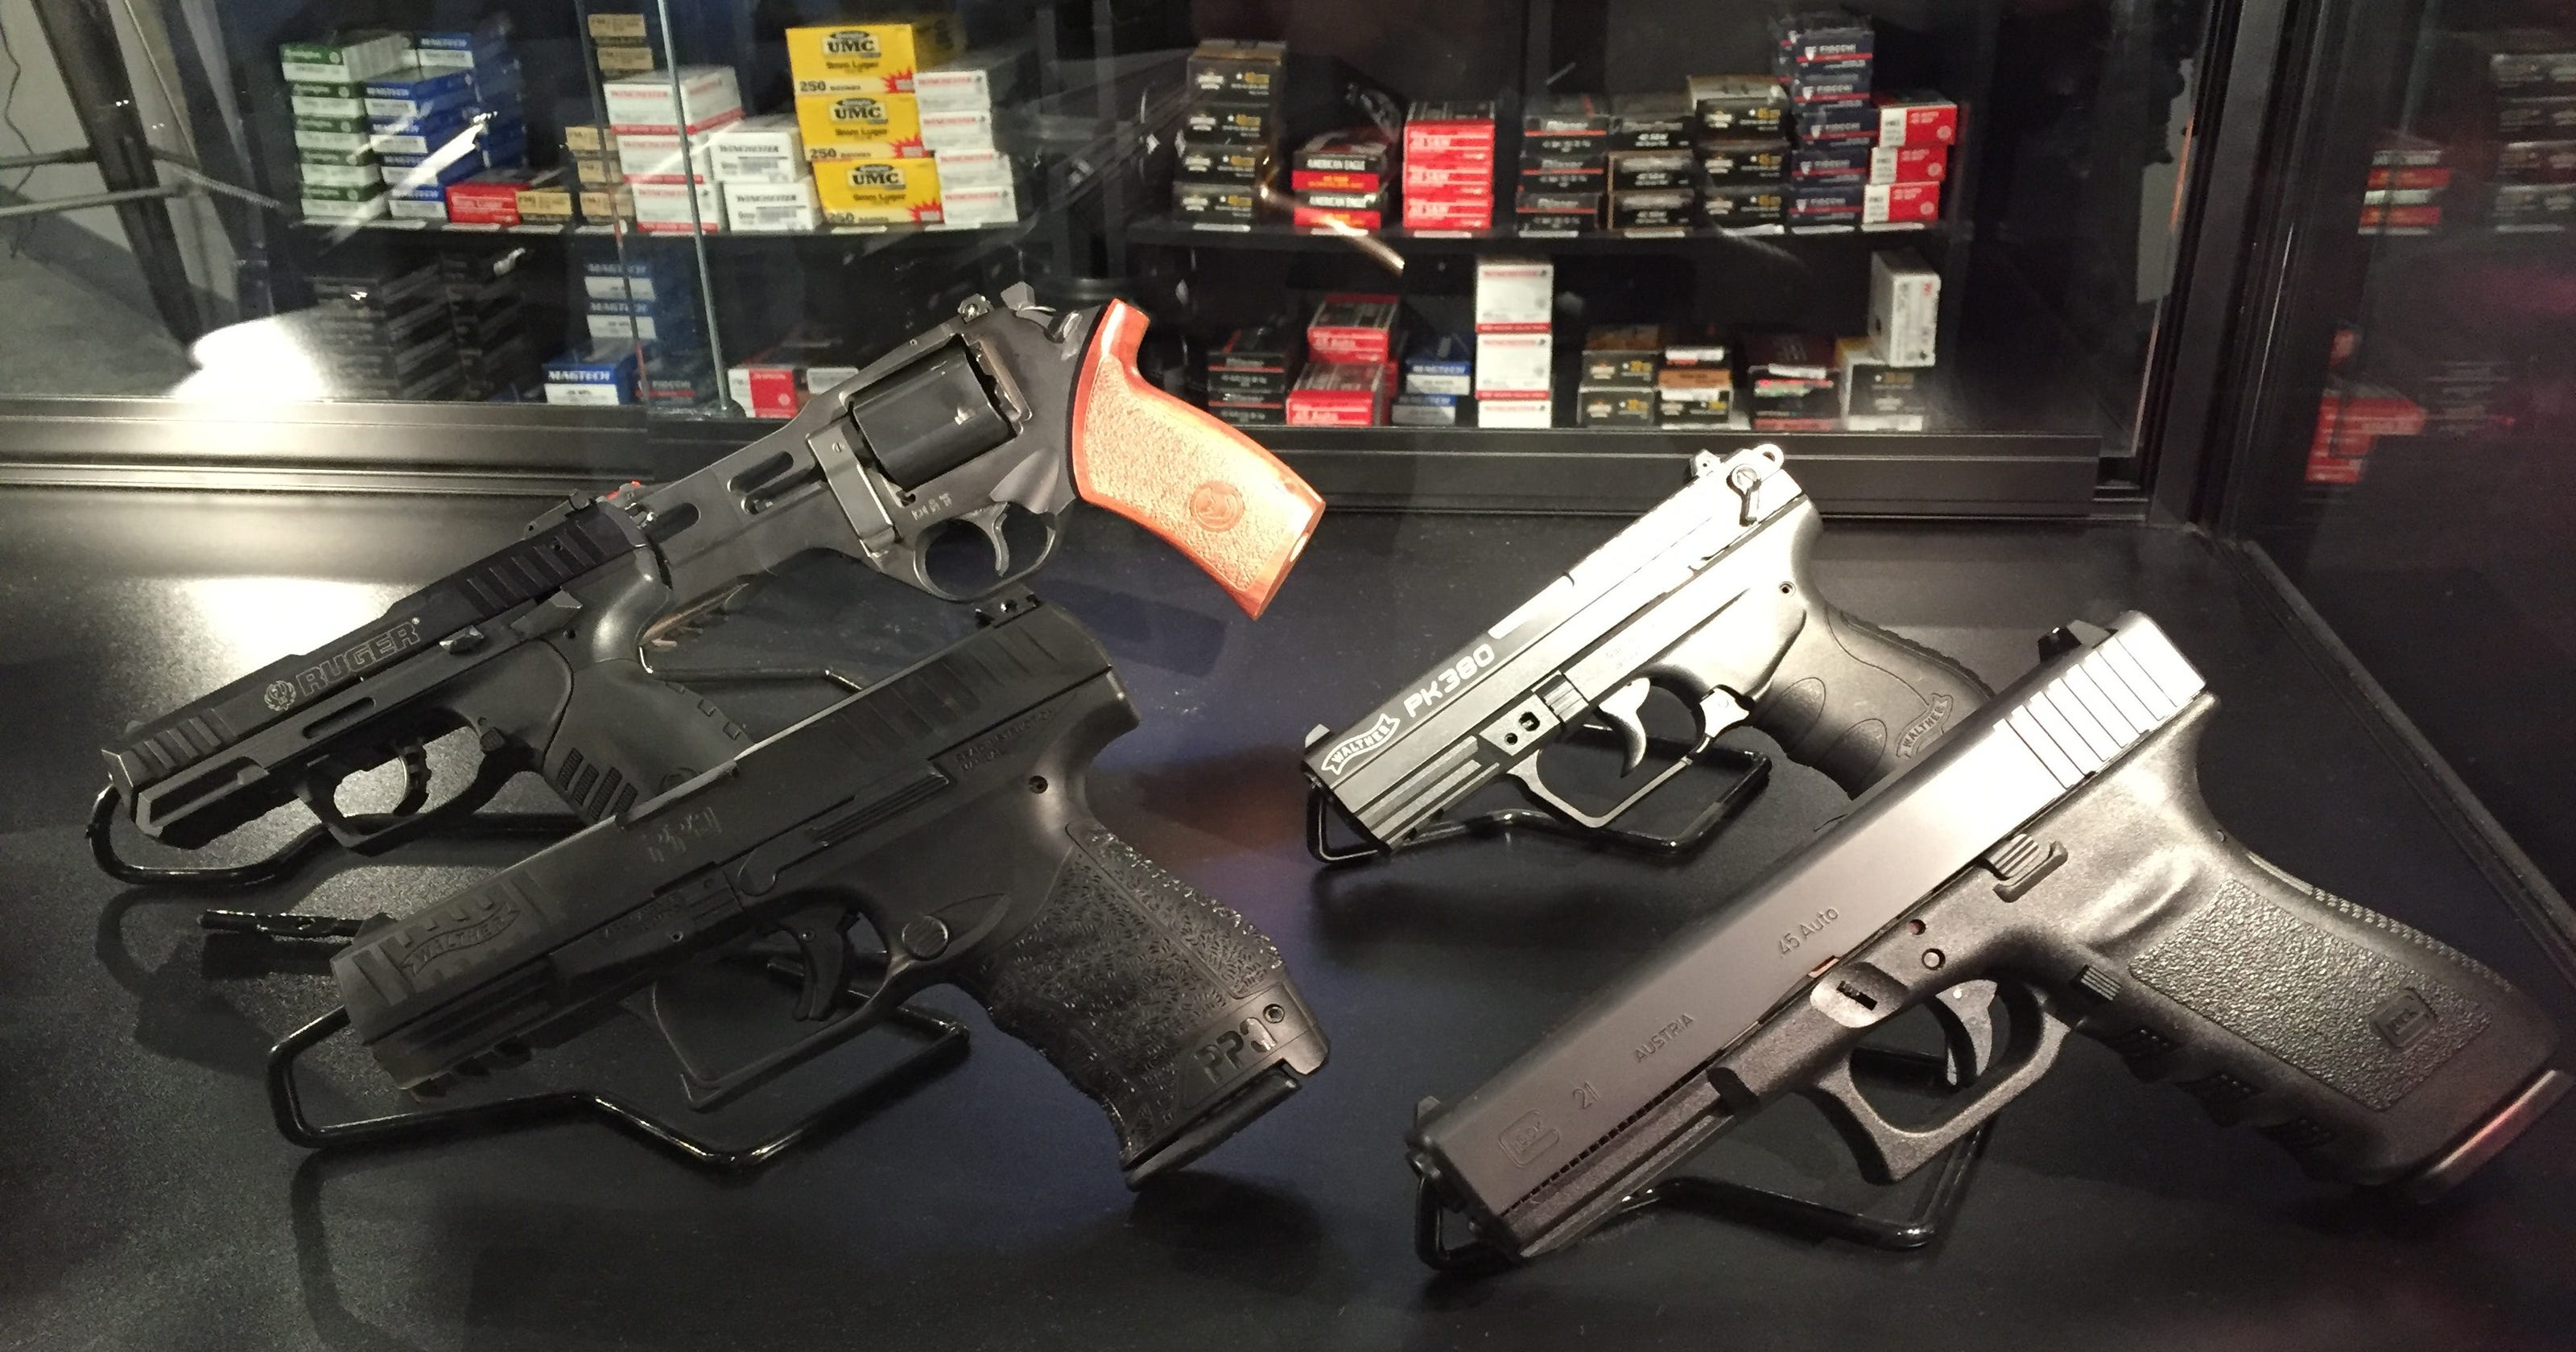 Broad changes proposed to Iowa gun laws